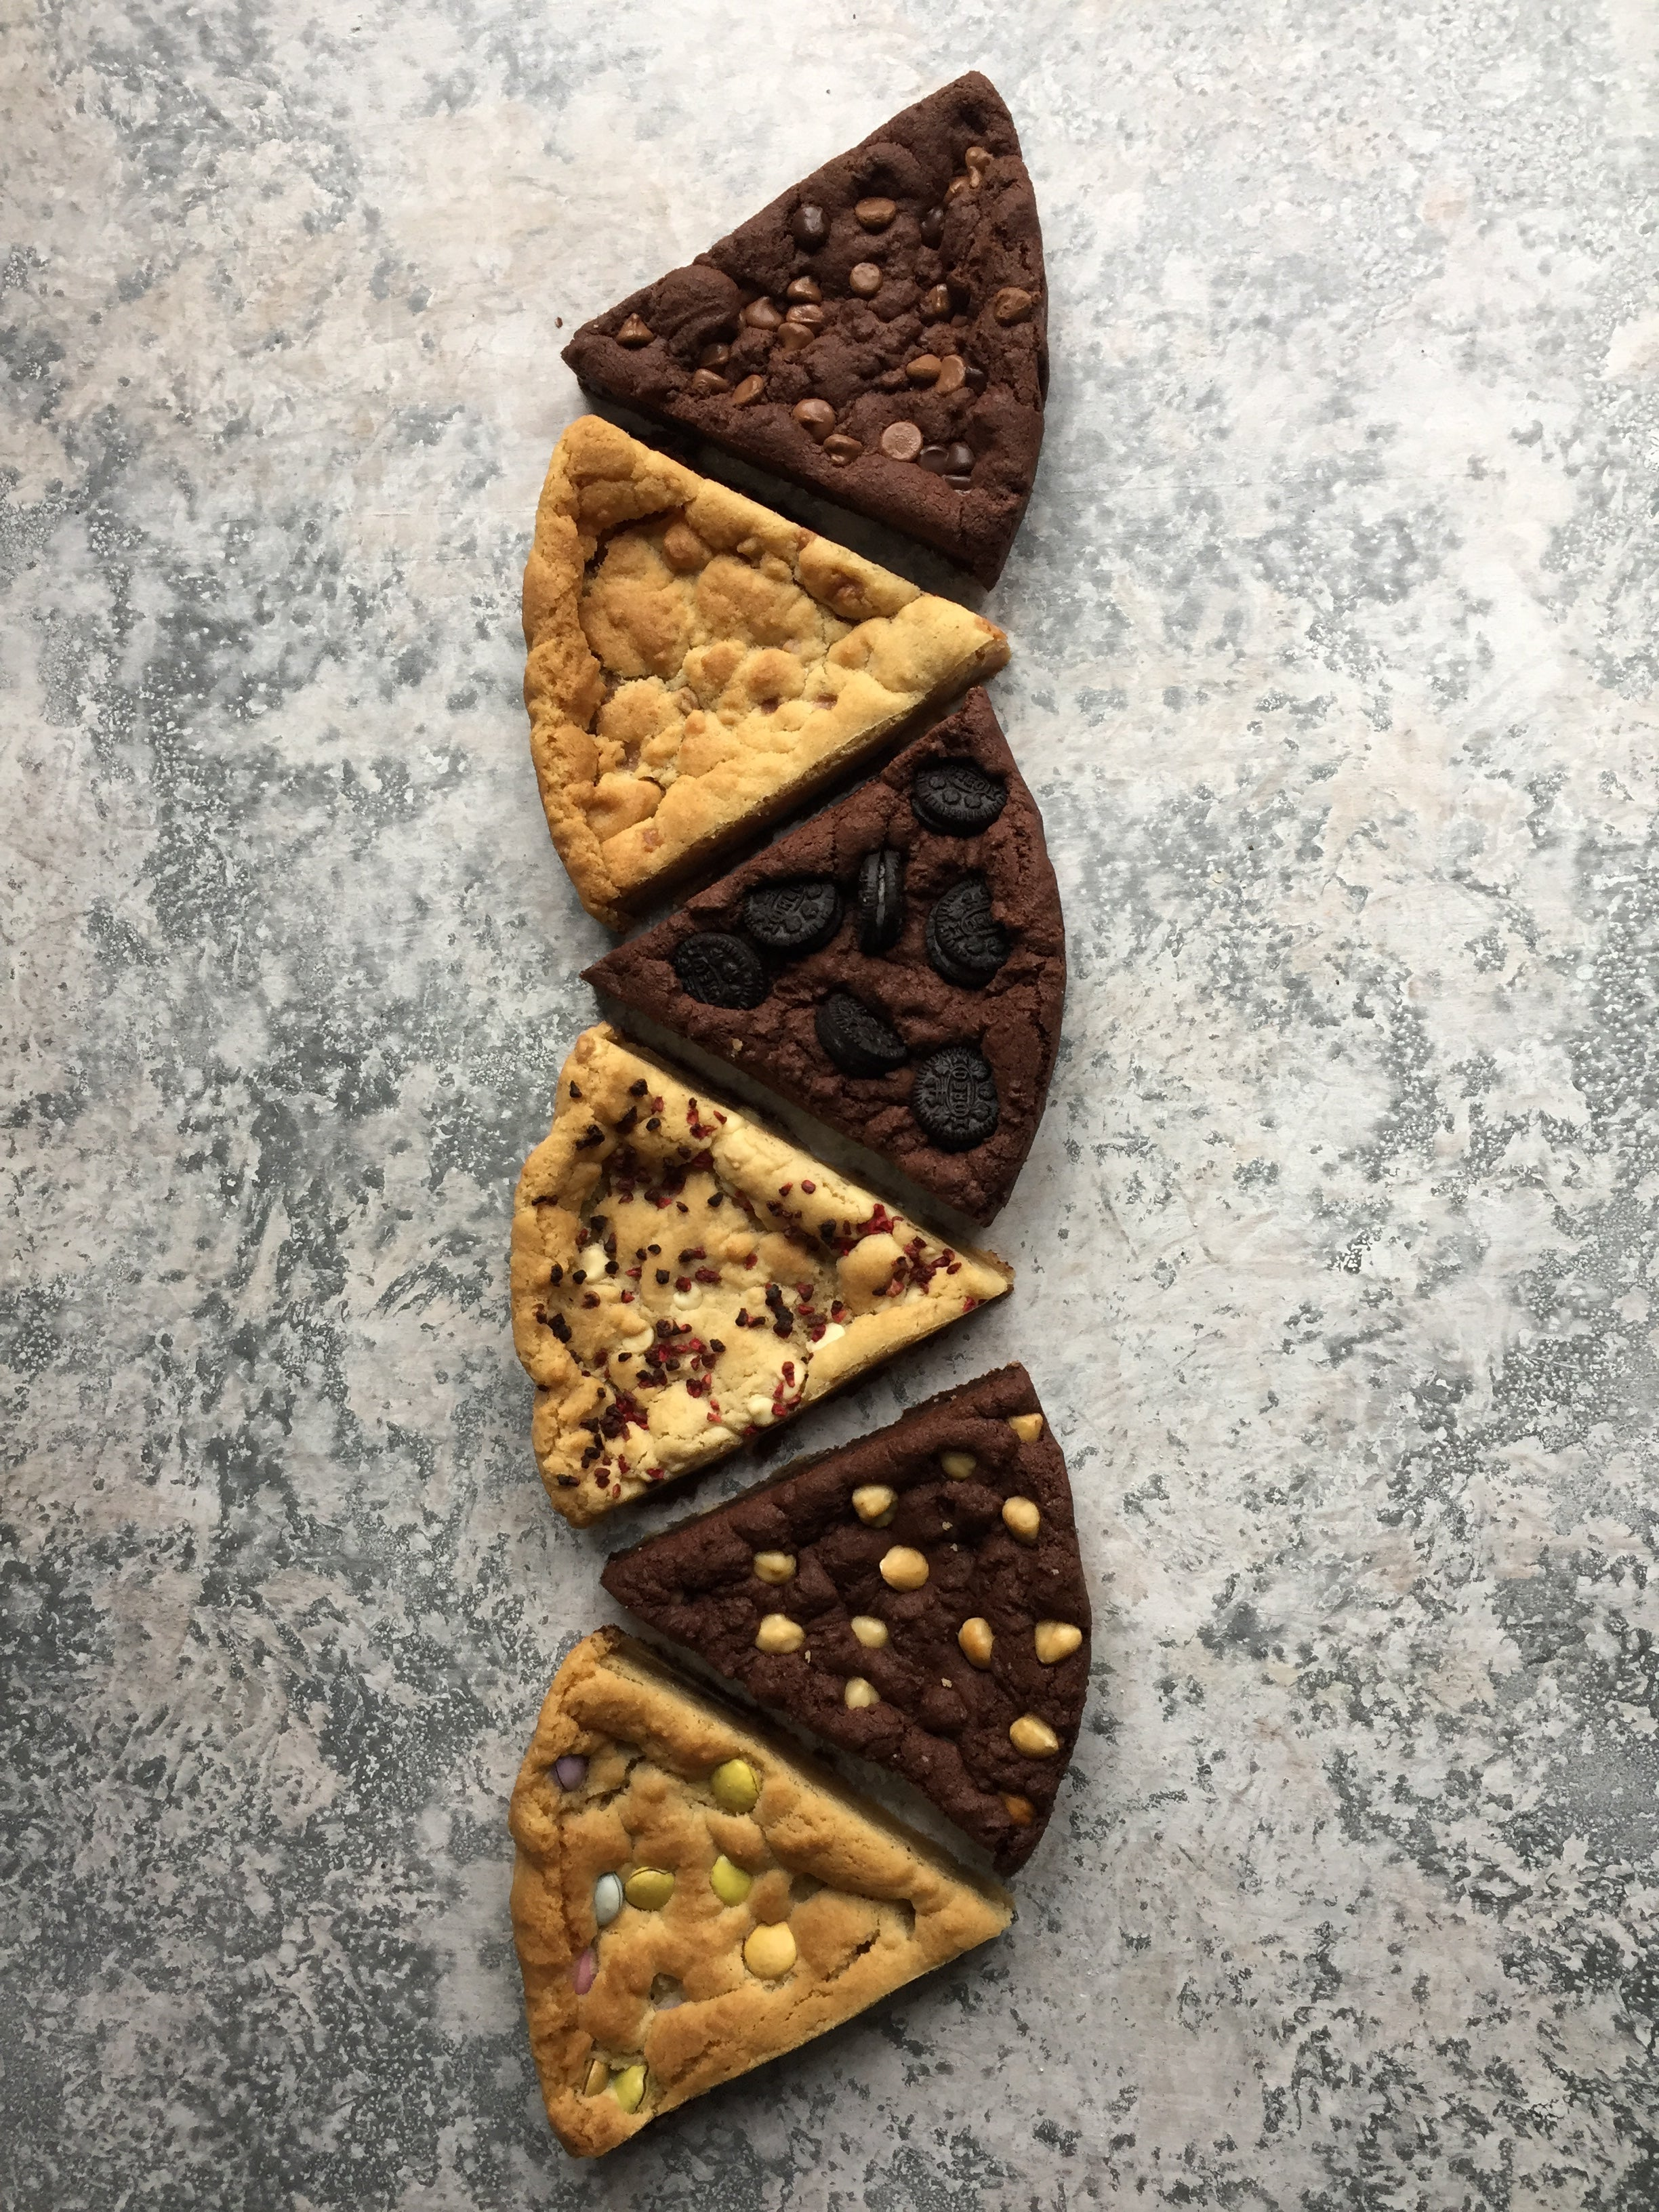 Giant-Sharing-Cookie_HIGH-RES_4.JPG